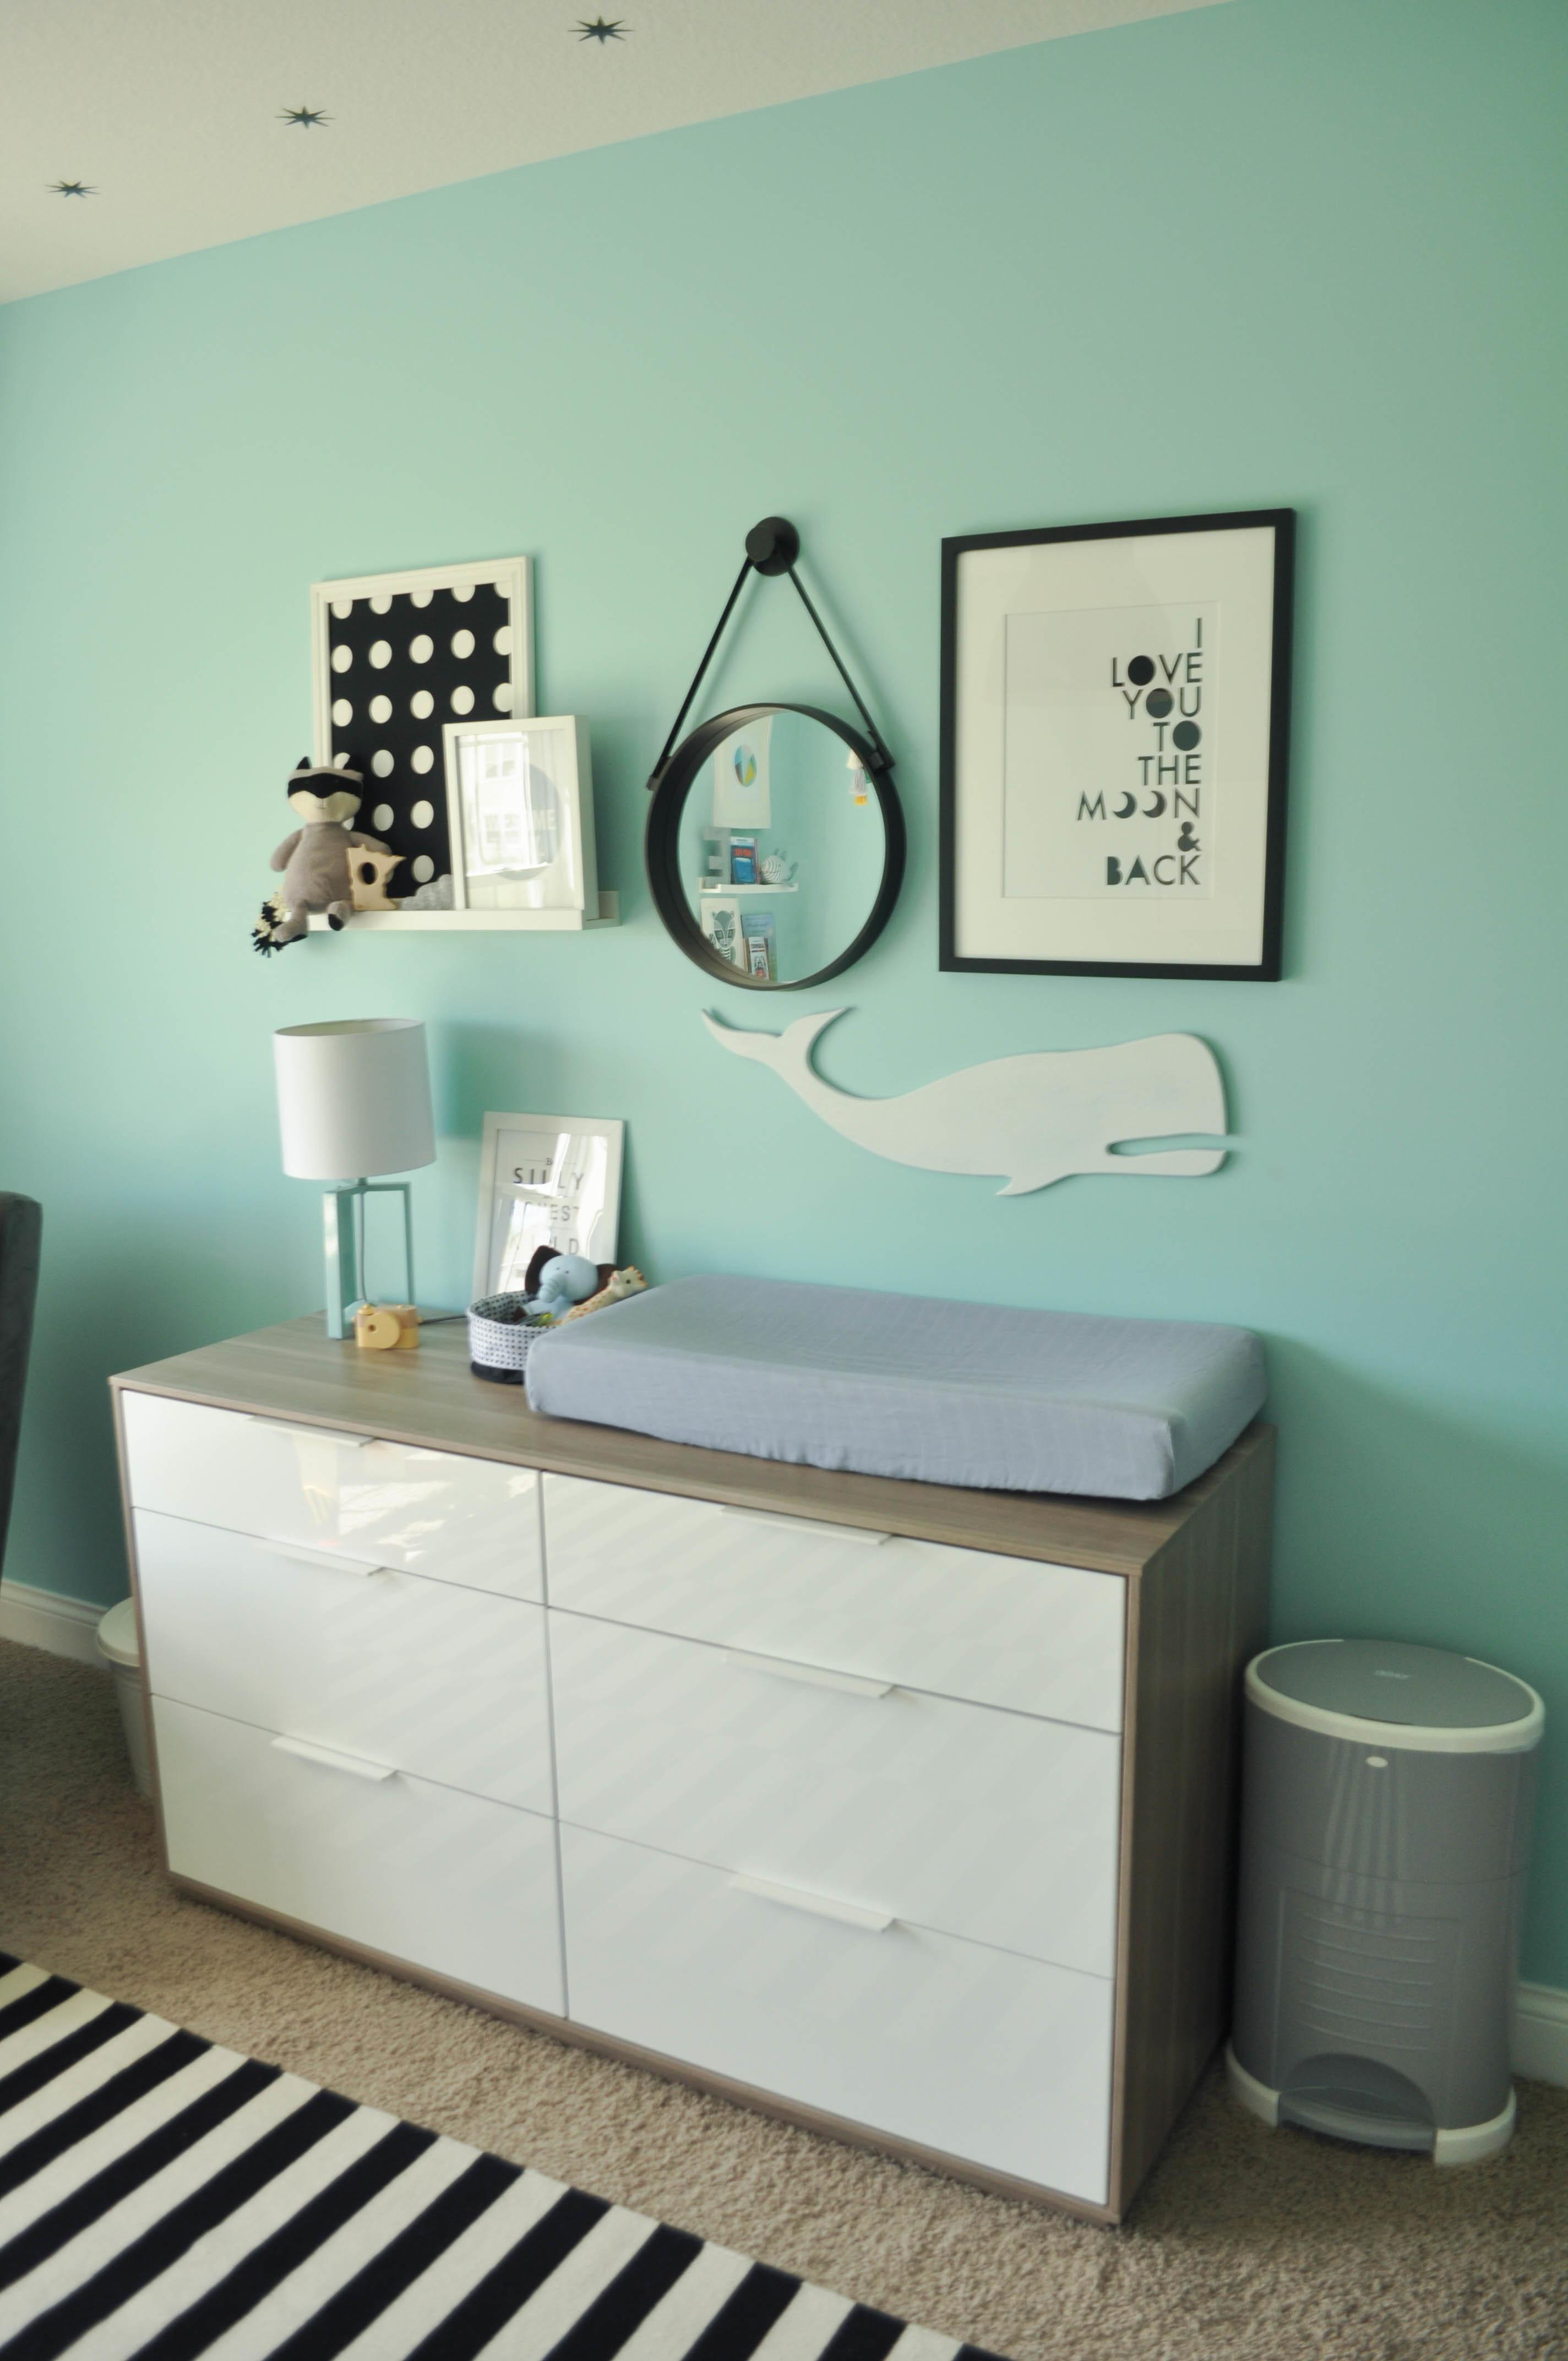 Our Industrial Modern Nursery Touch Whimsy